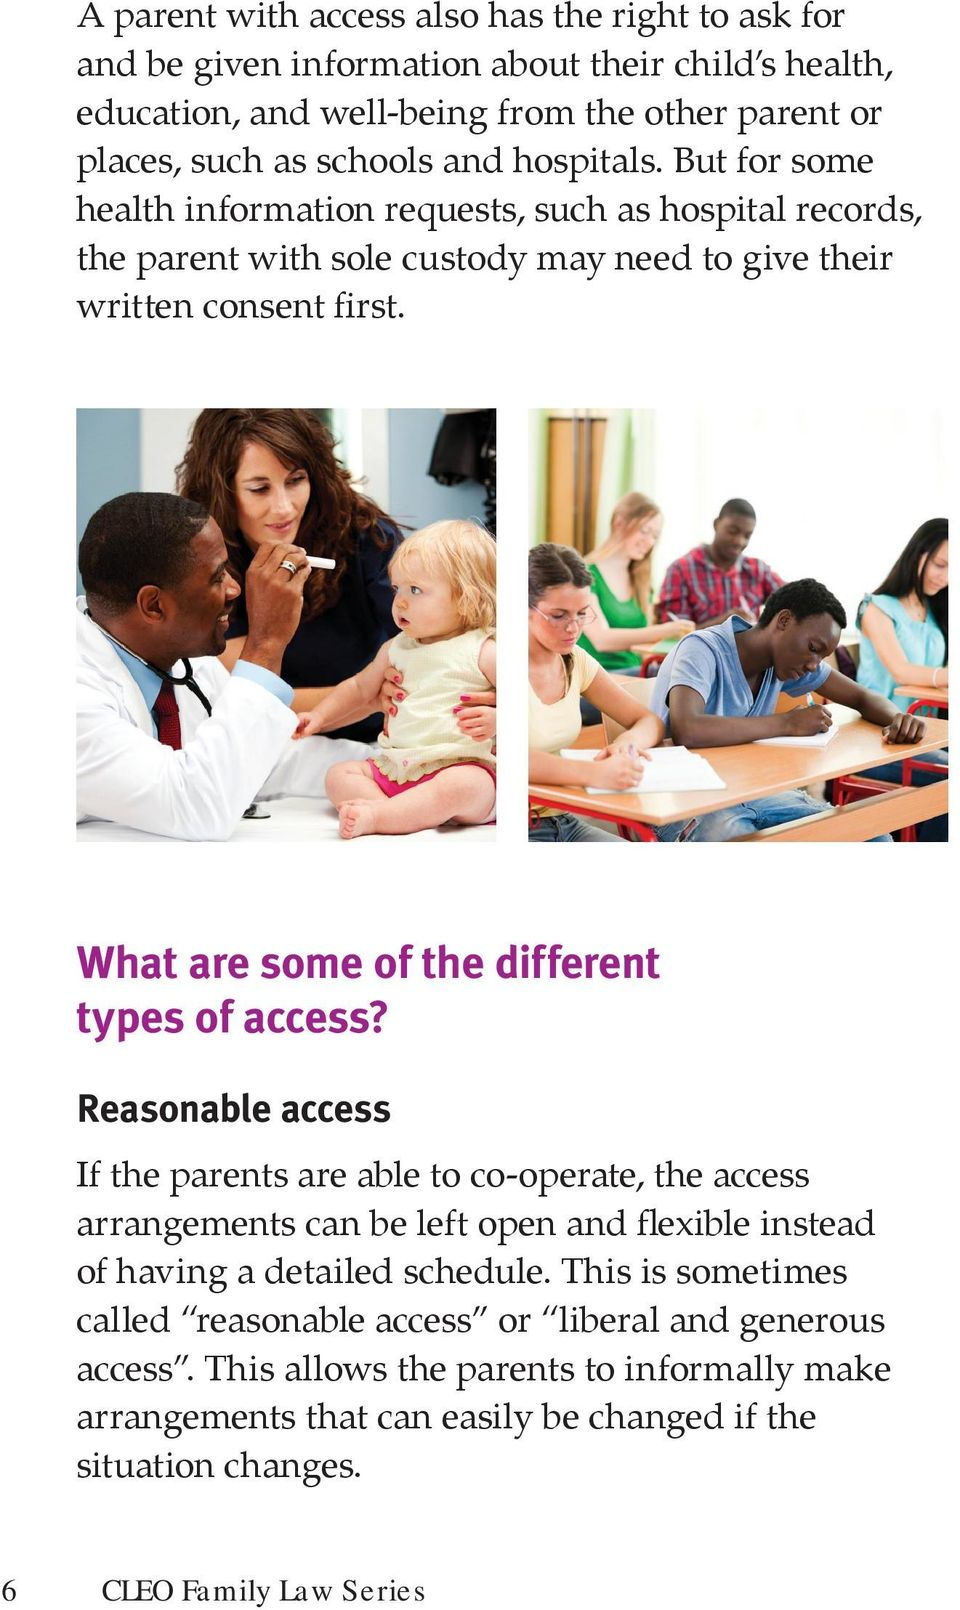 What are some of the different types of access?